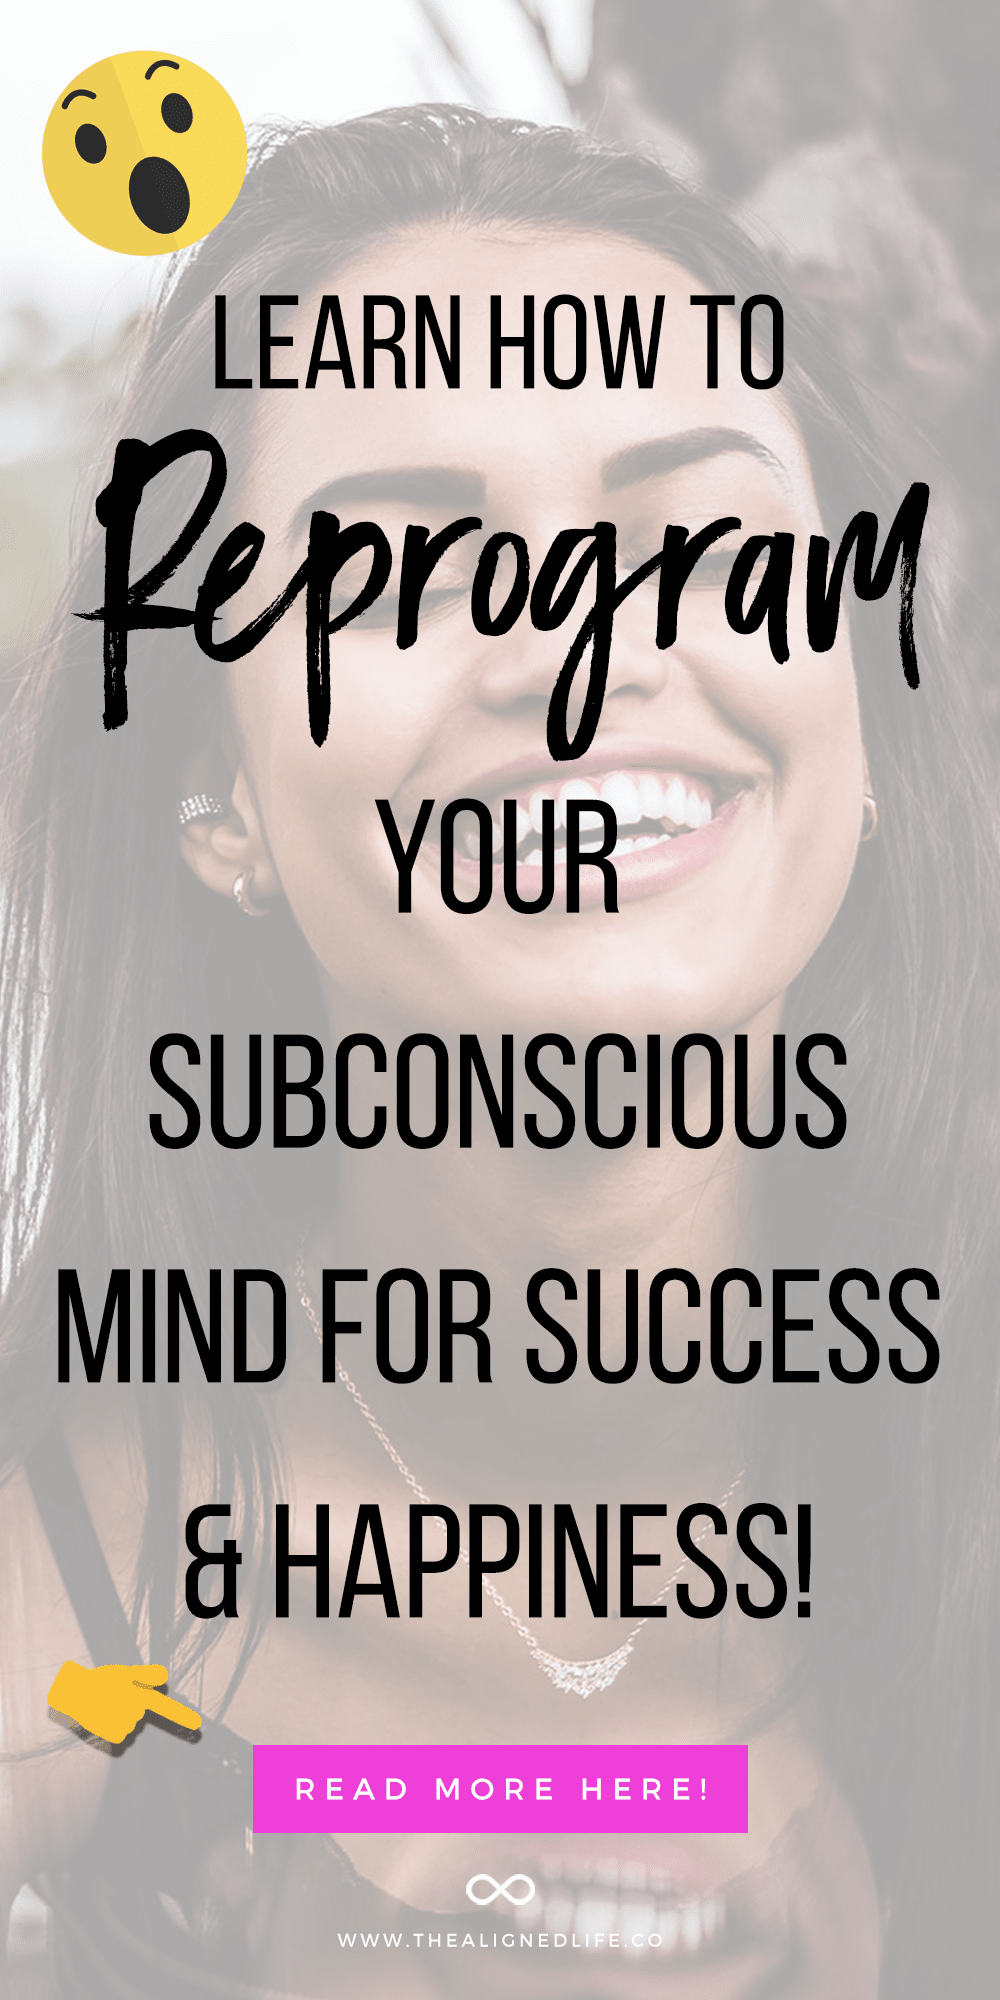 Reprogram Your Subconscious Mind For Success And Happiness!